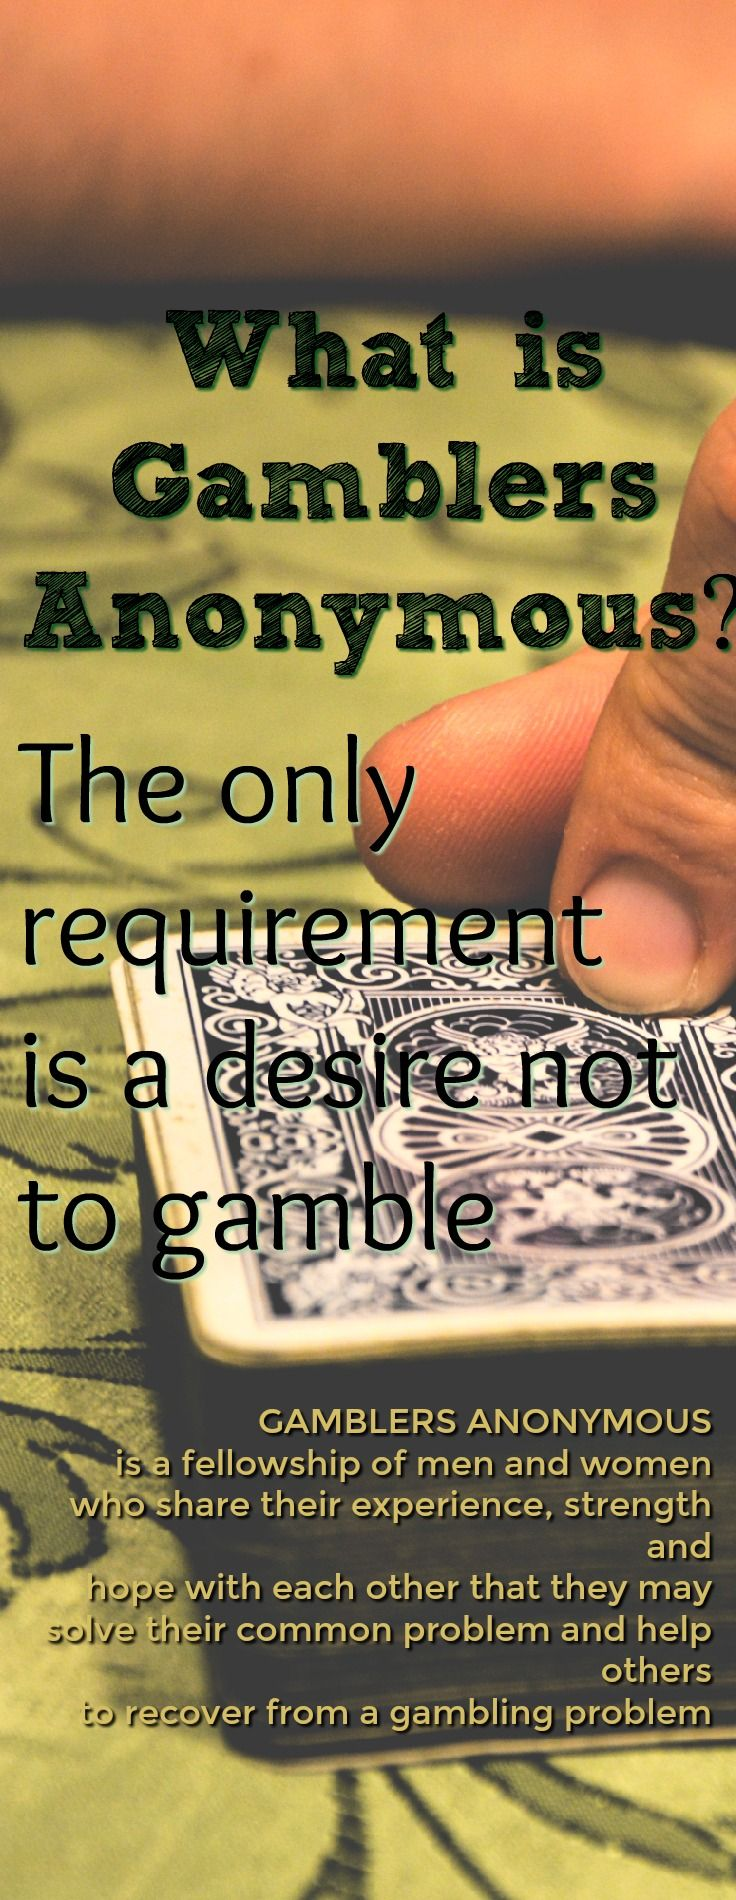 Stop gambling compulsive gambler gambler anonymous gambling addiction casino control commission atlantic city nj